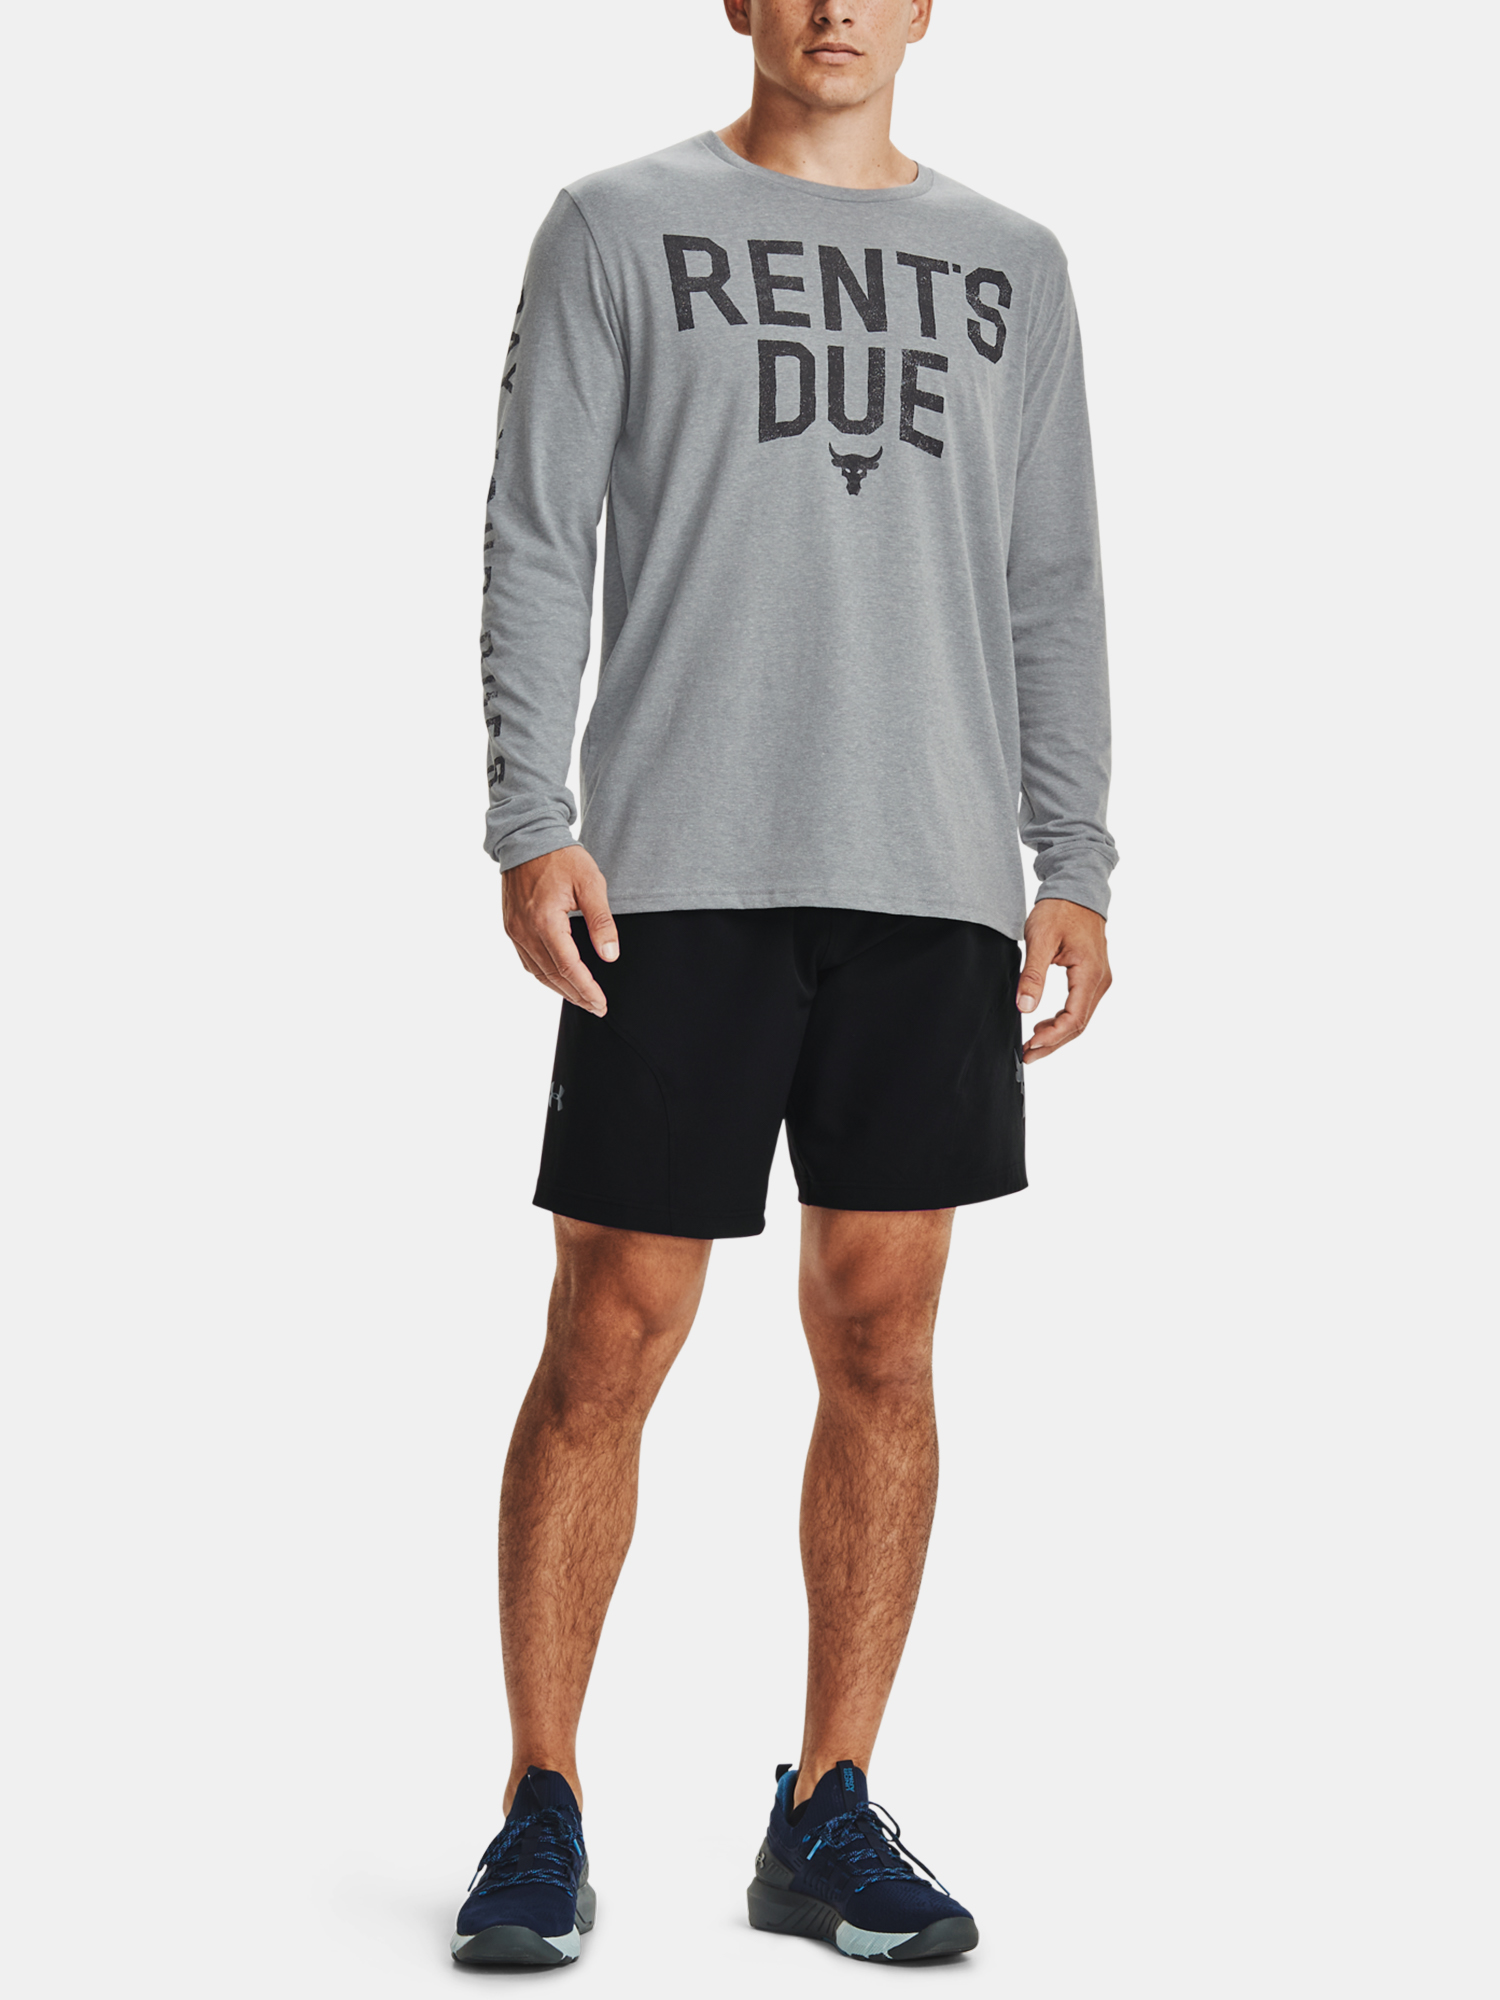 Tričko Under Armour PJT ROCK RENTS DUE LS-GRY (7)